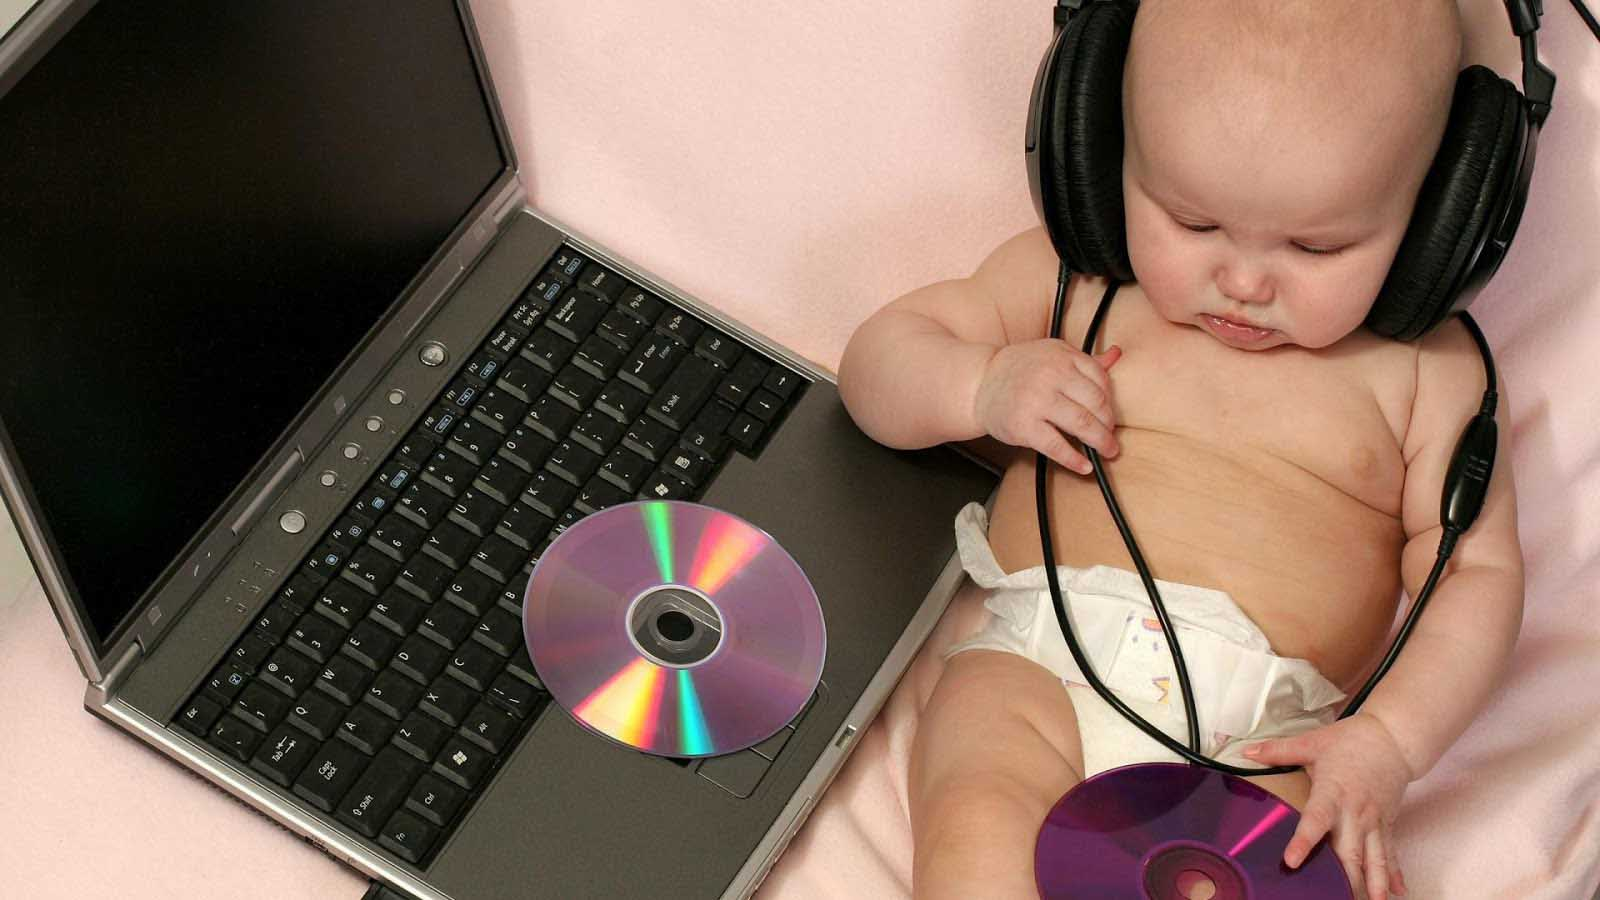 Baby Pictures Hd Wallpapers Free Download Baby Hd Wallpaper For Laptop 1600x900 Wallpaper Teahub Io